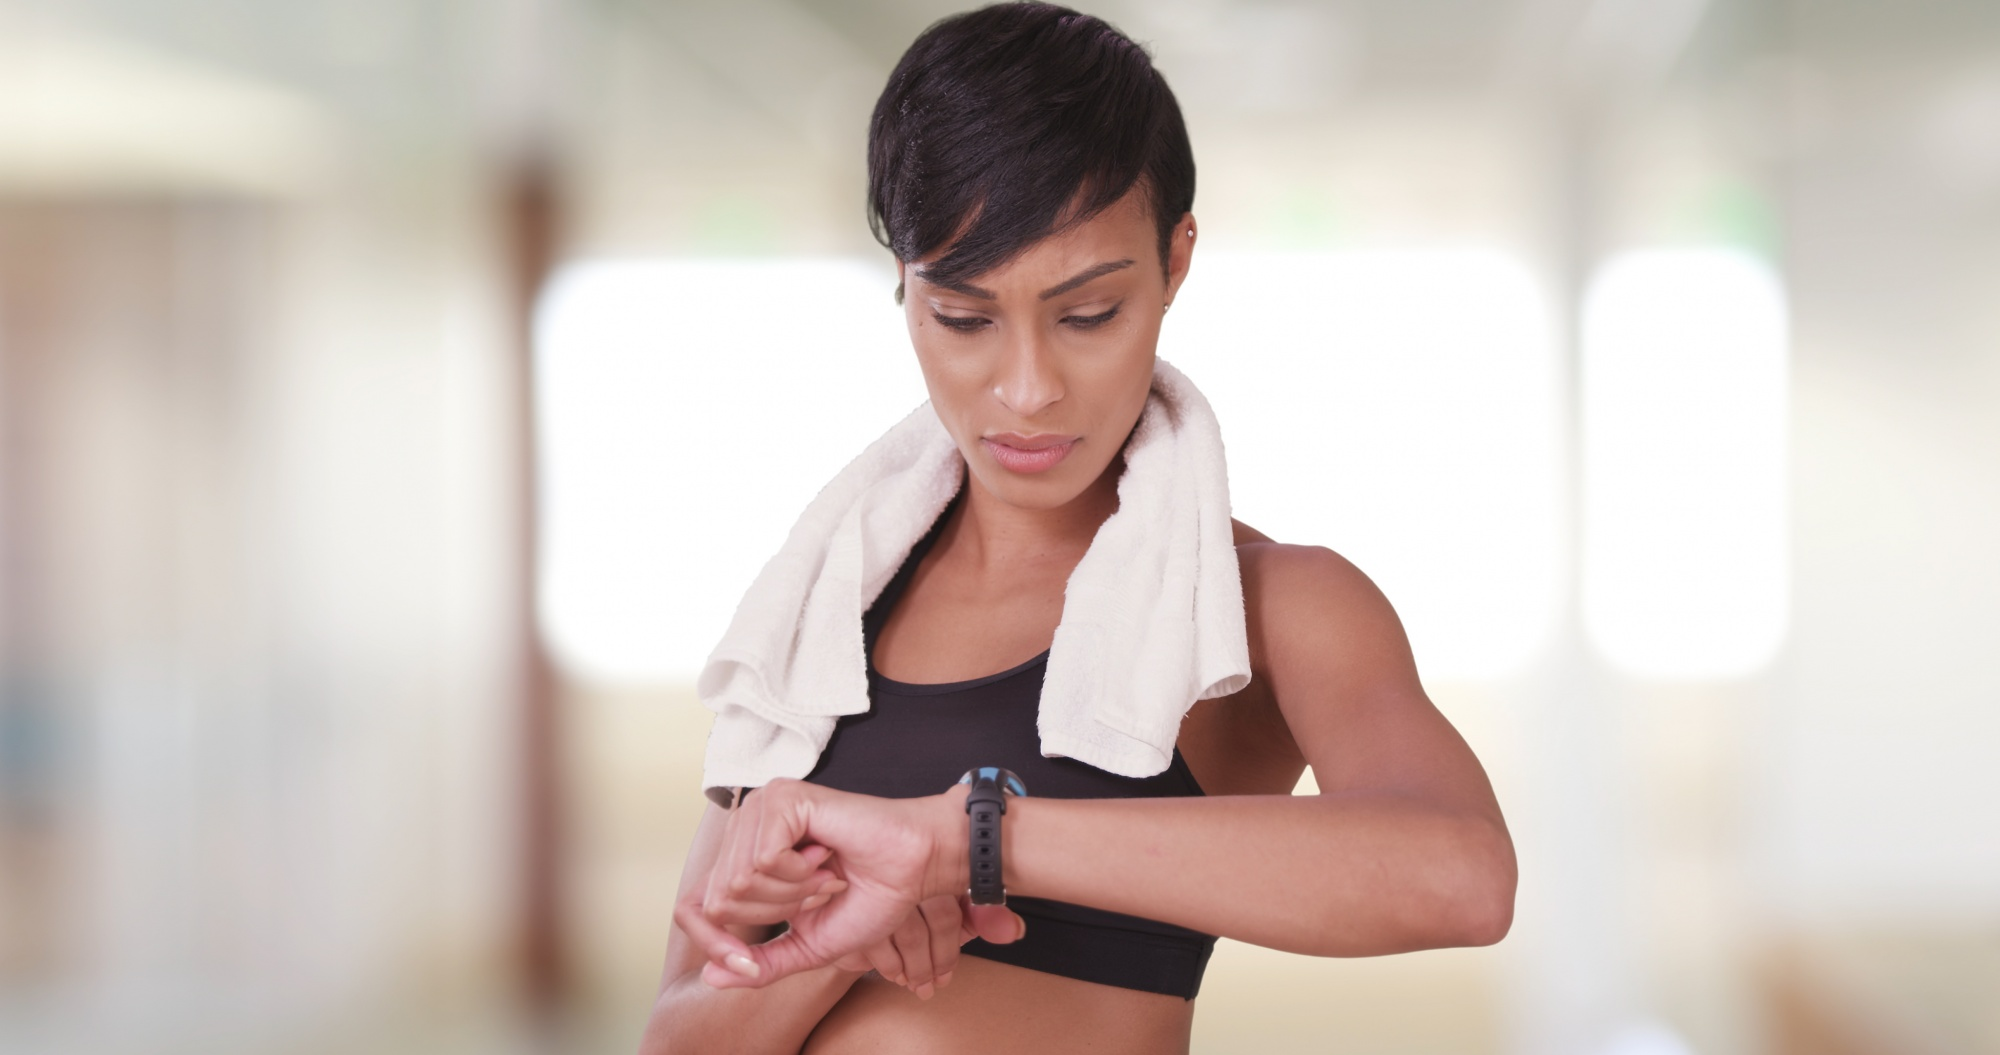 Starting a self care routine, Black woman in gym using smart watch to check heart rate